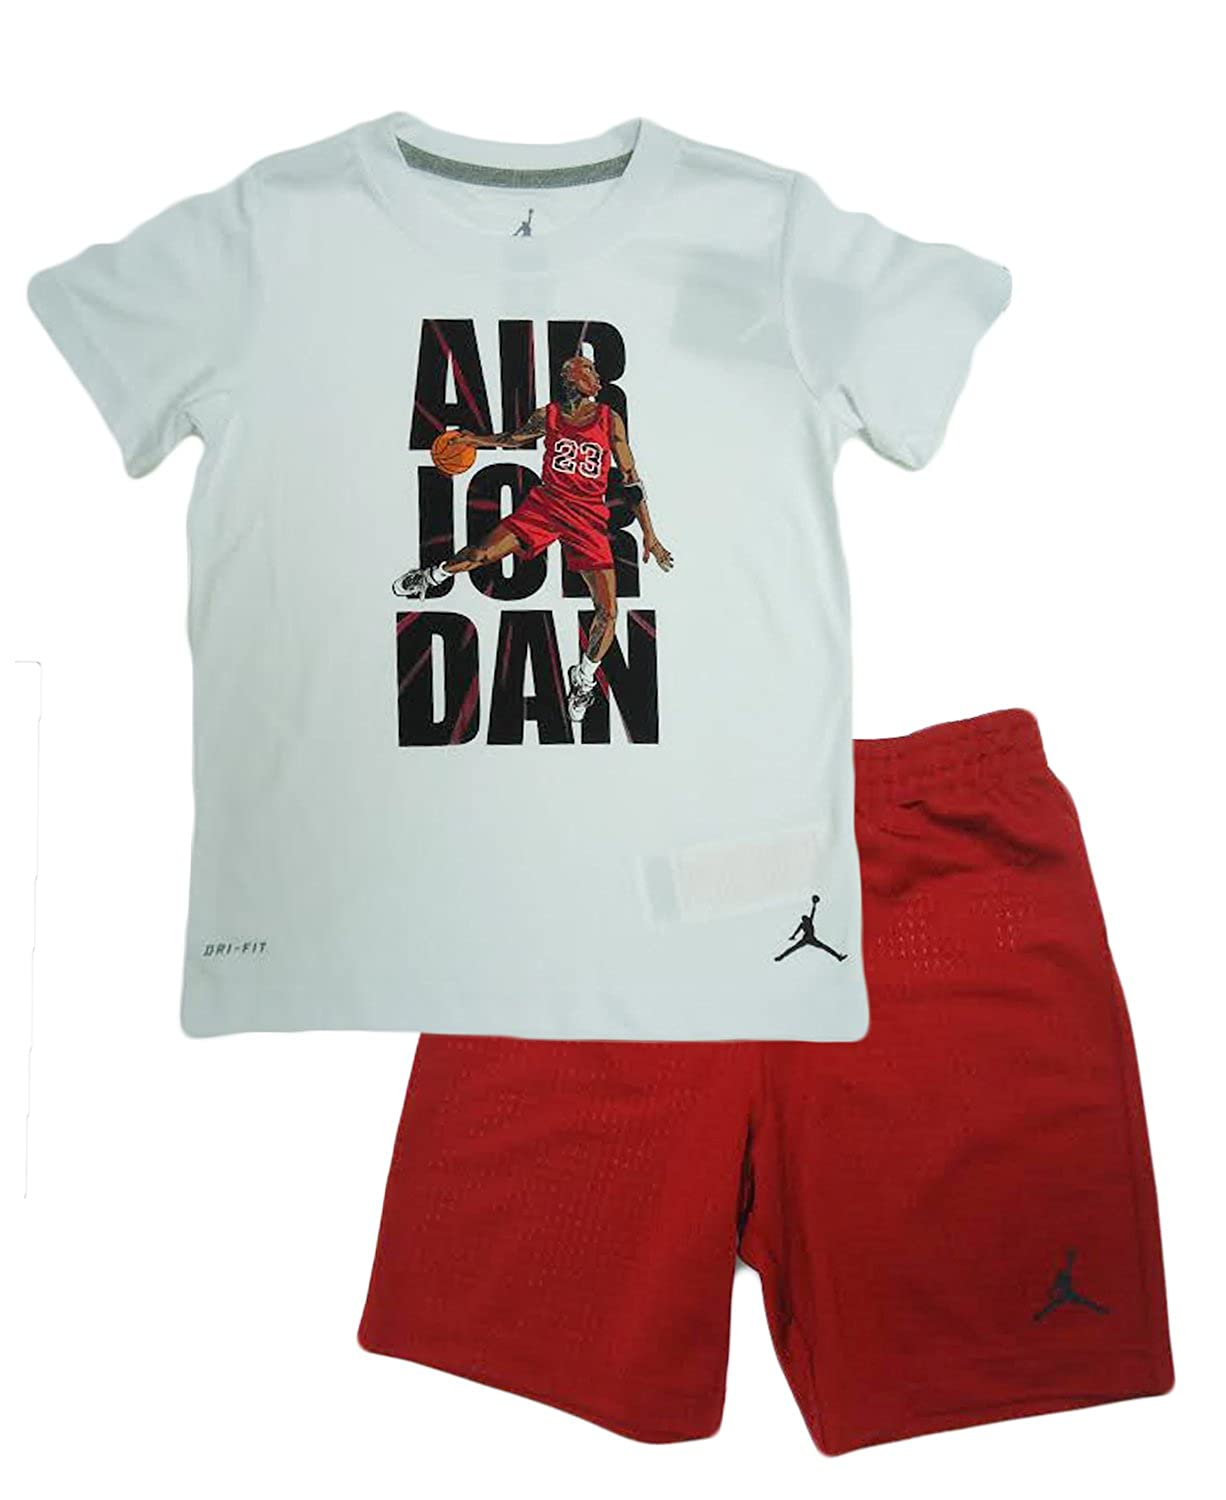 6c824d5fbc9 Jordan Outfit For Toddlers